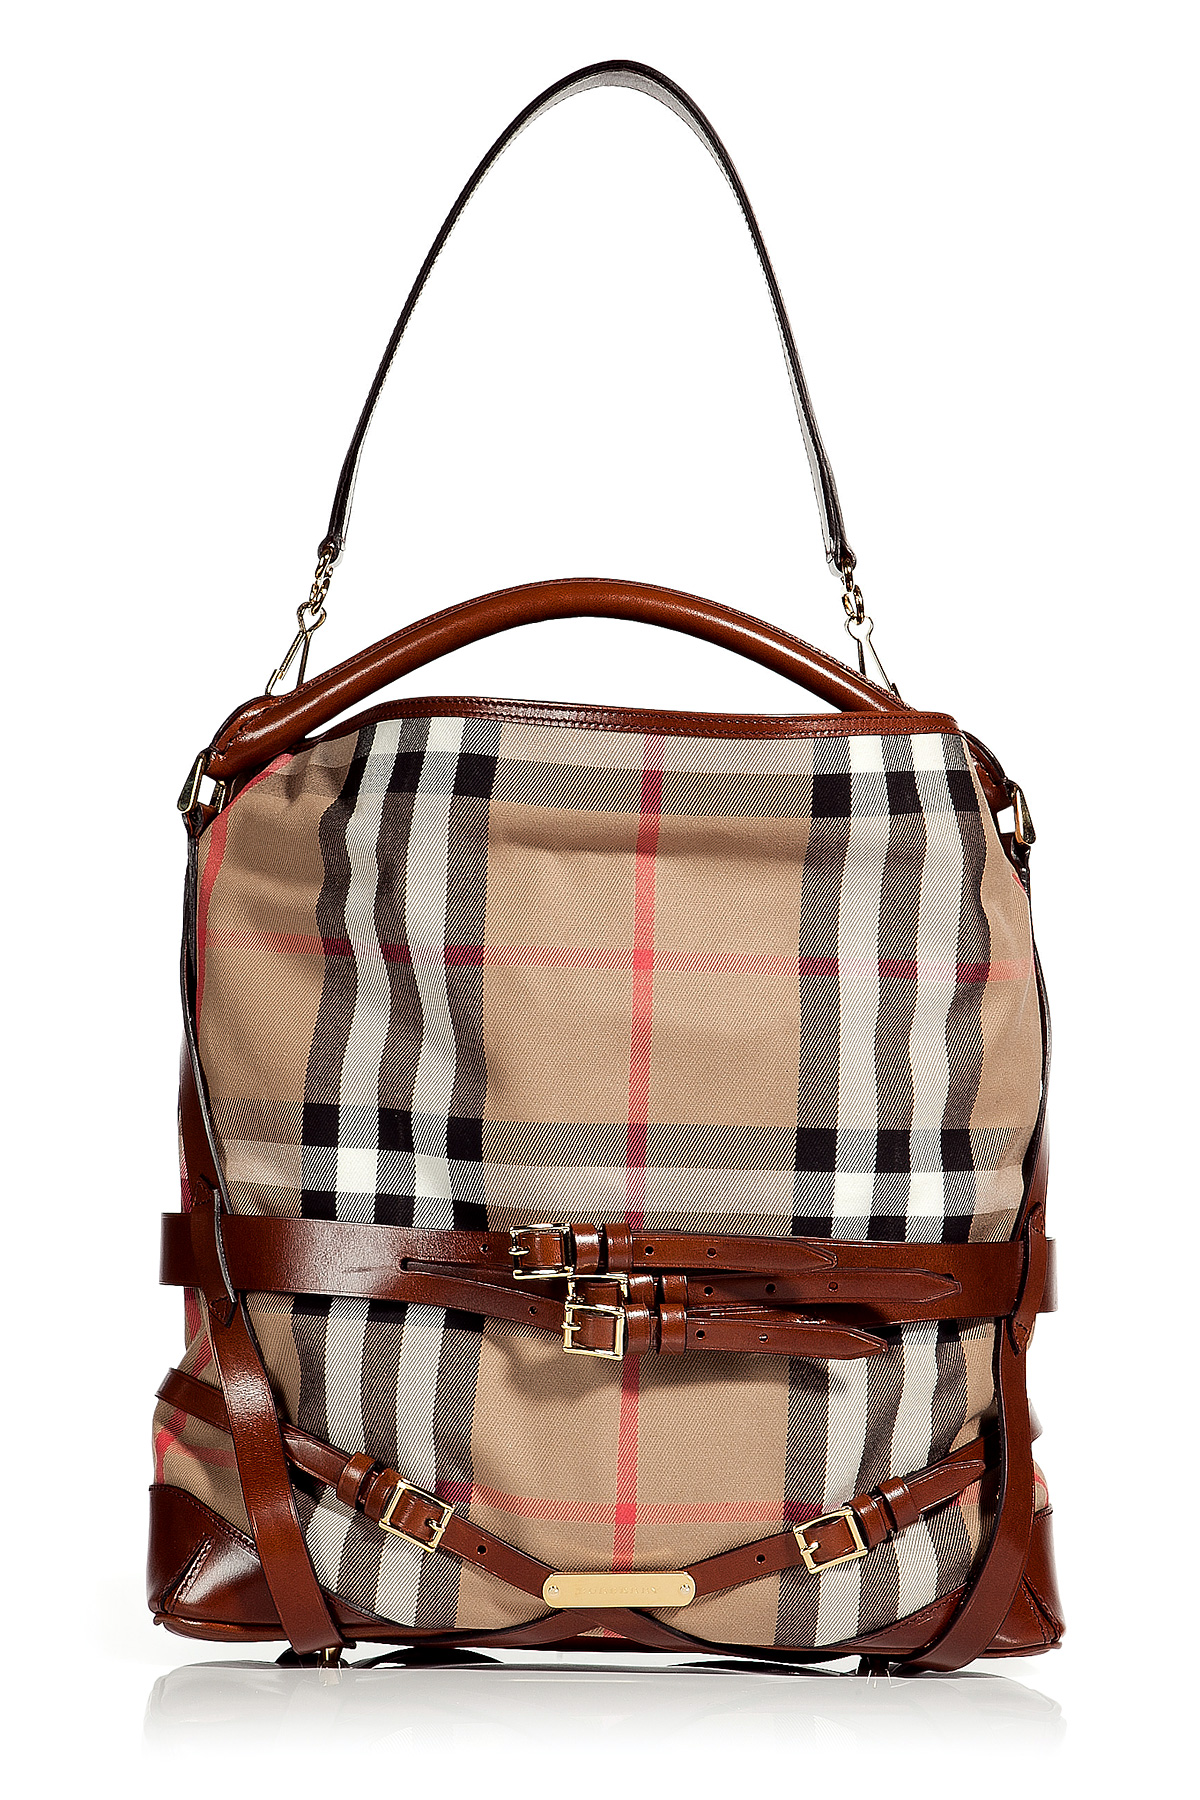 67c492ac4ea0 Lyst Burberry Dark Tan Bridle House Check Medium Gosford Hobo In Brown